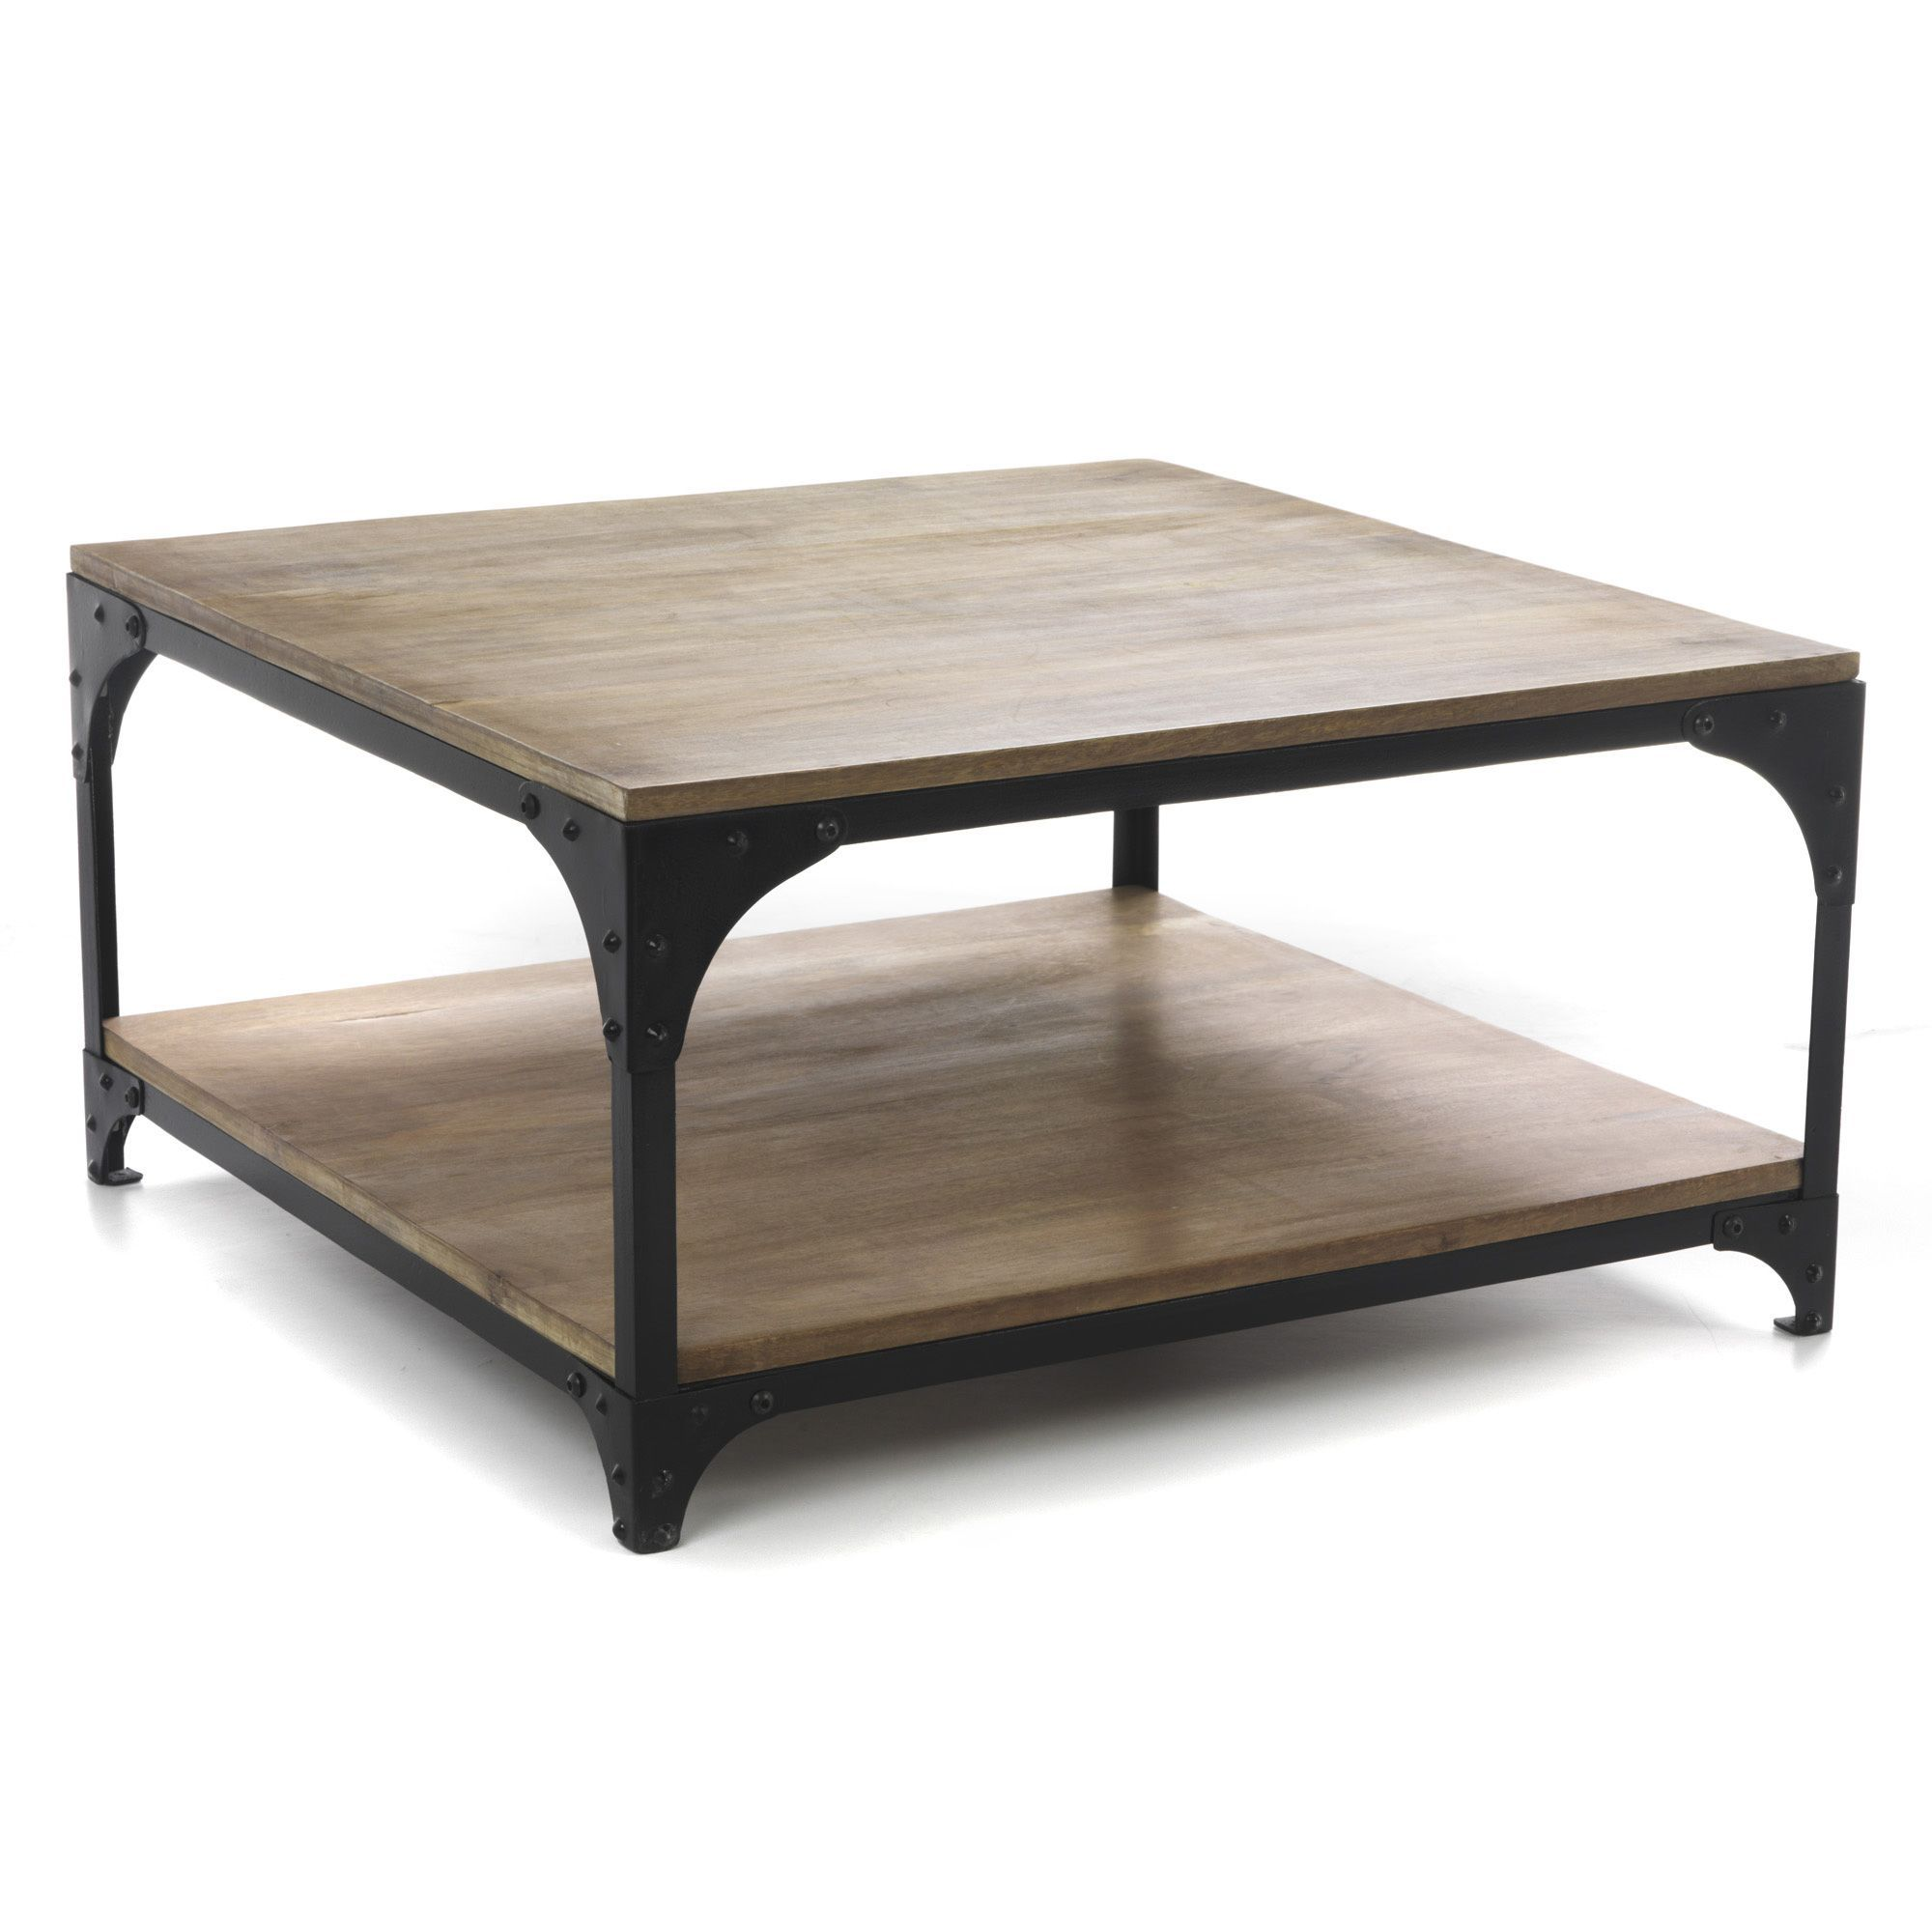 Table basse carr e industrielle naturel new ately les tables basses tab - Console table a manger ...